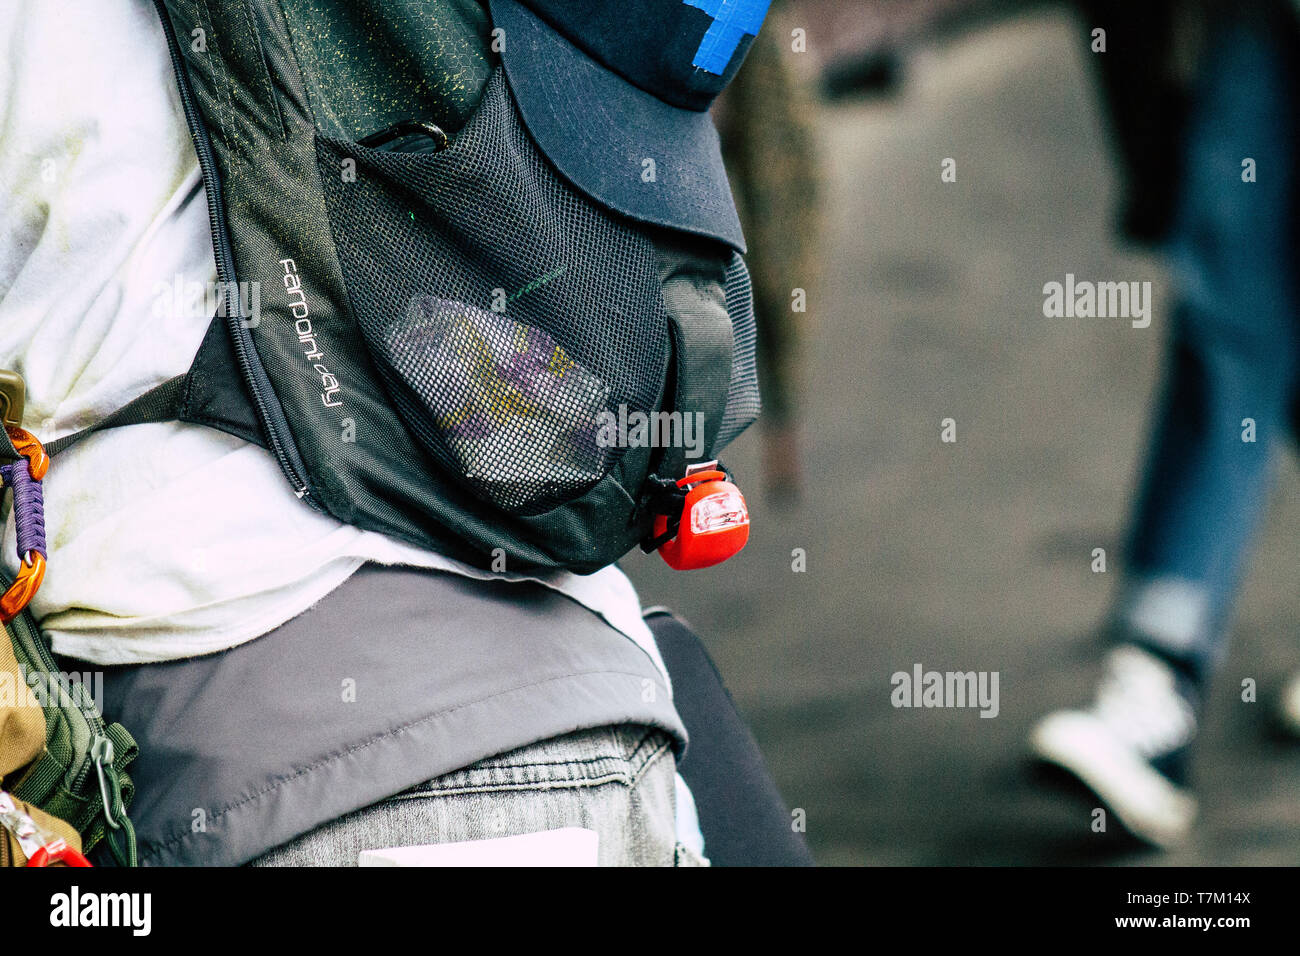 Paris France May 04, 2019 View of French street medic helping a protester injured by the riot squad of the French National Police in the street during - Stock Image